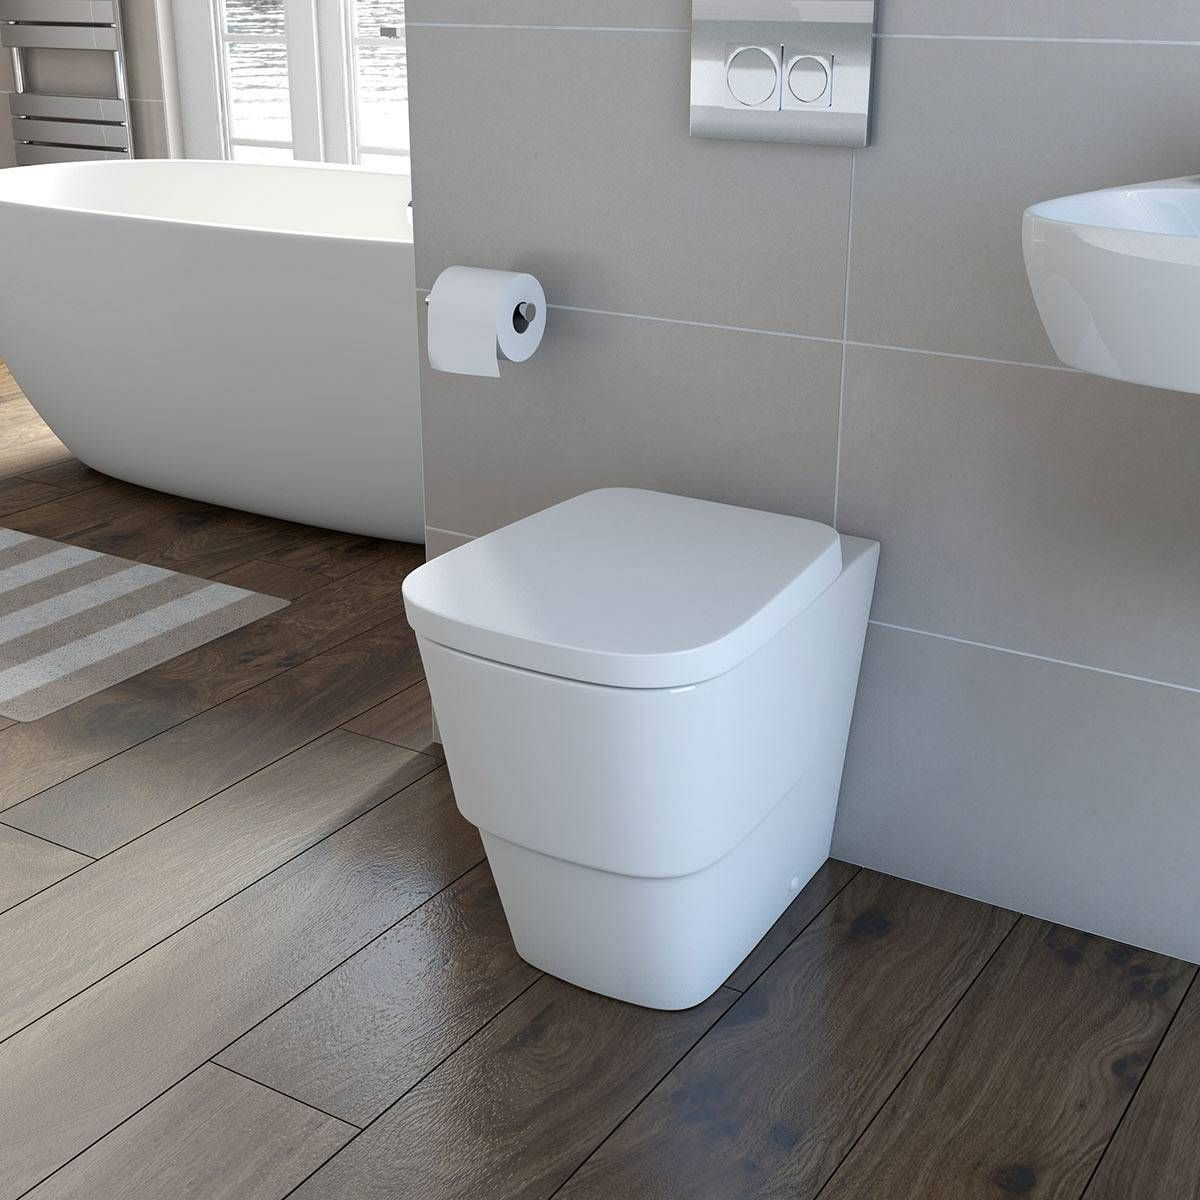 Bathroom Accessories Victoria Plumb victoria plumb - princeton back to wall toilet inc luxury soft